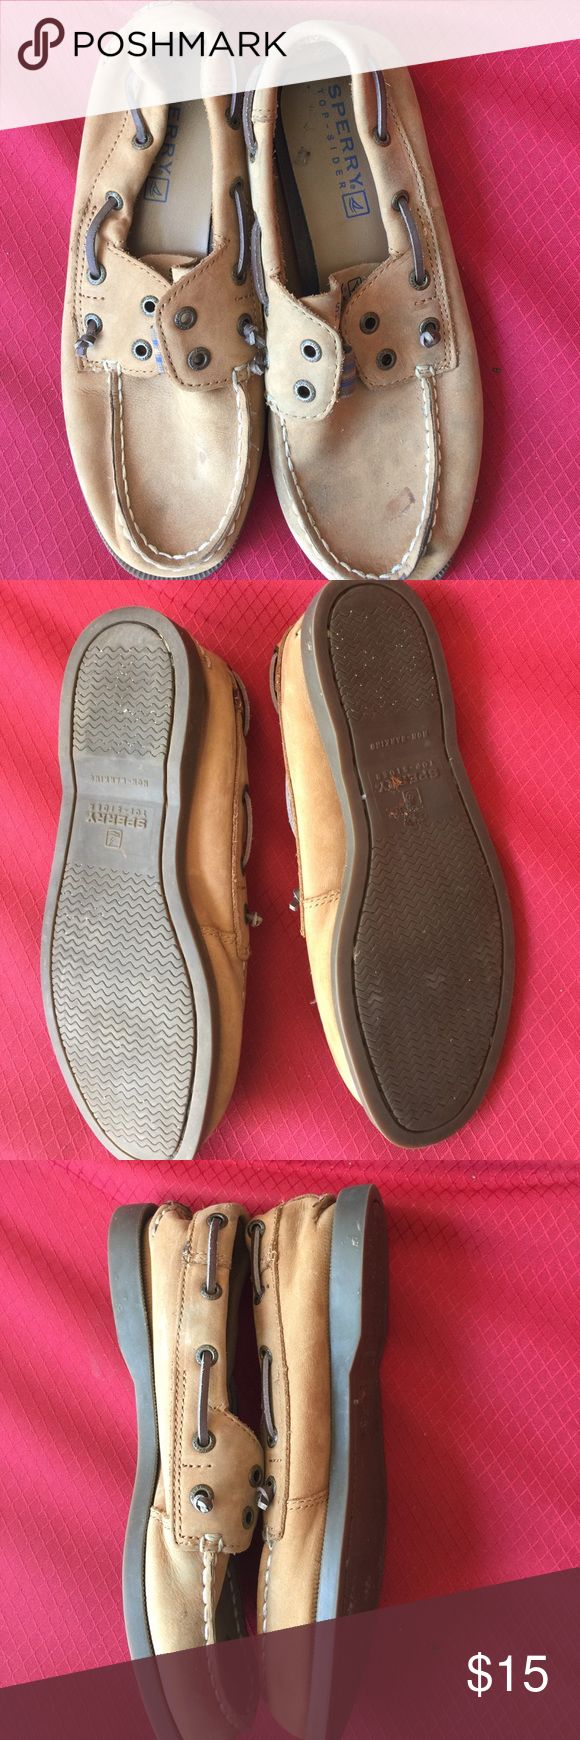 Boys Sperry loafer Size 3.5 needs a little tender living care but other wise great shape! Sperry Shoes